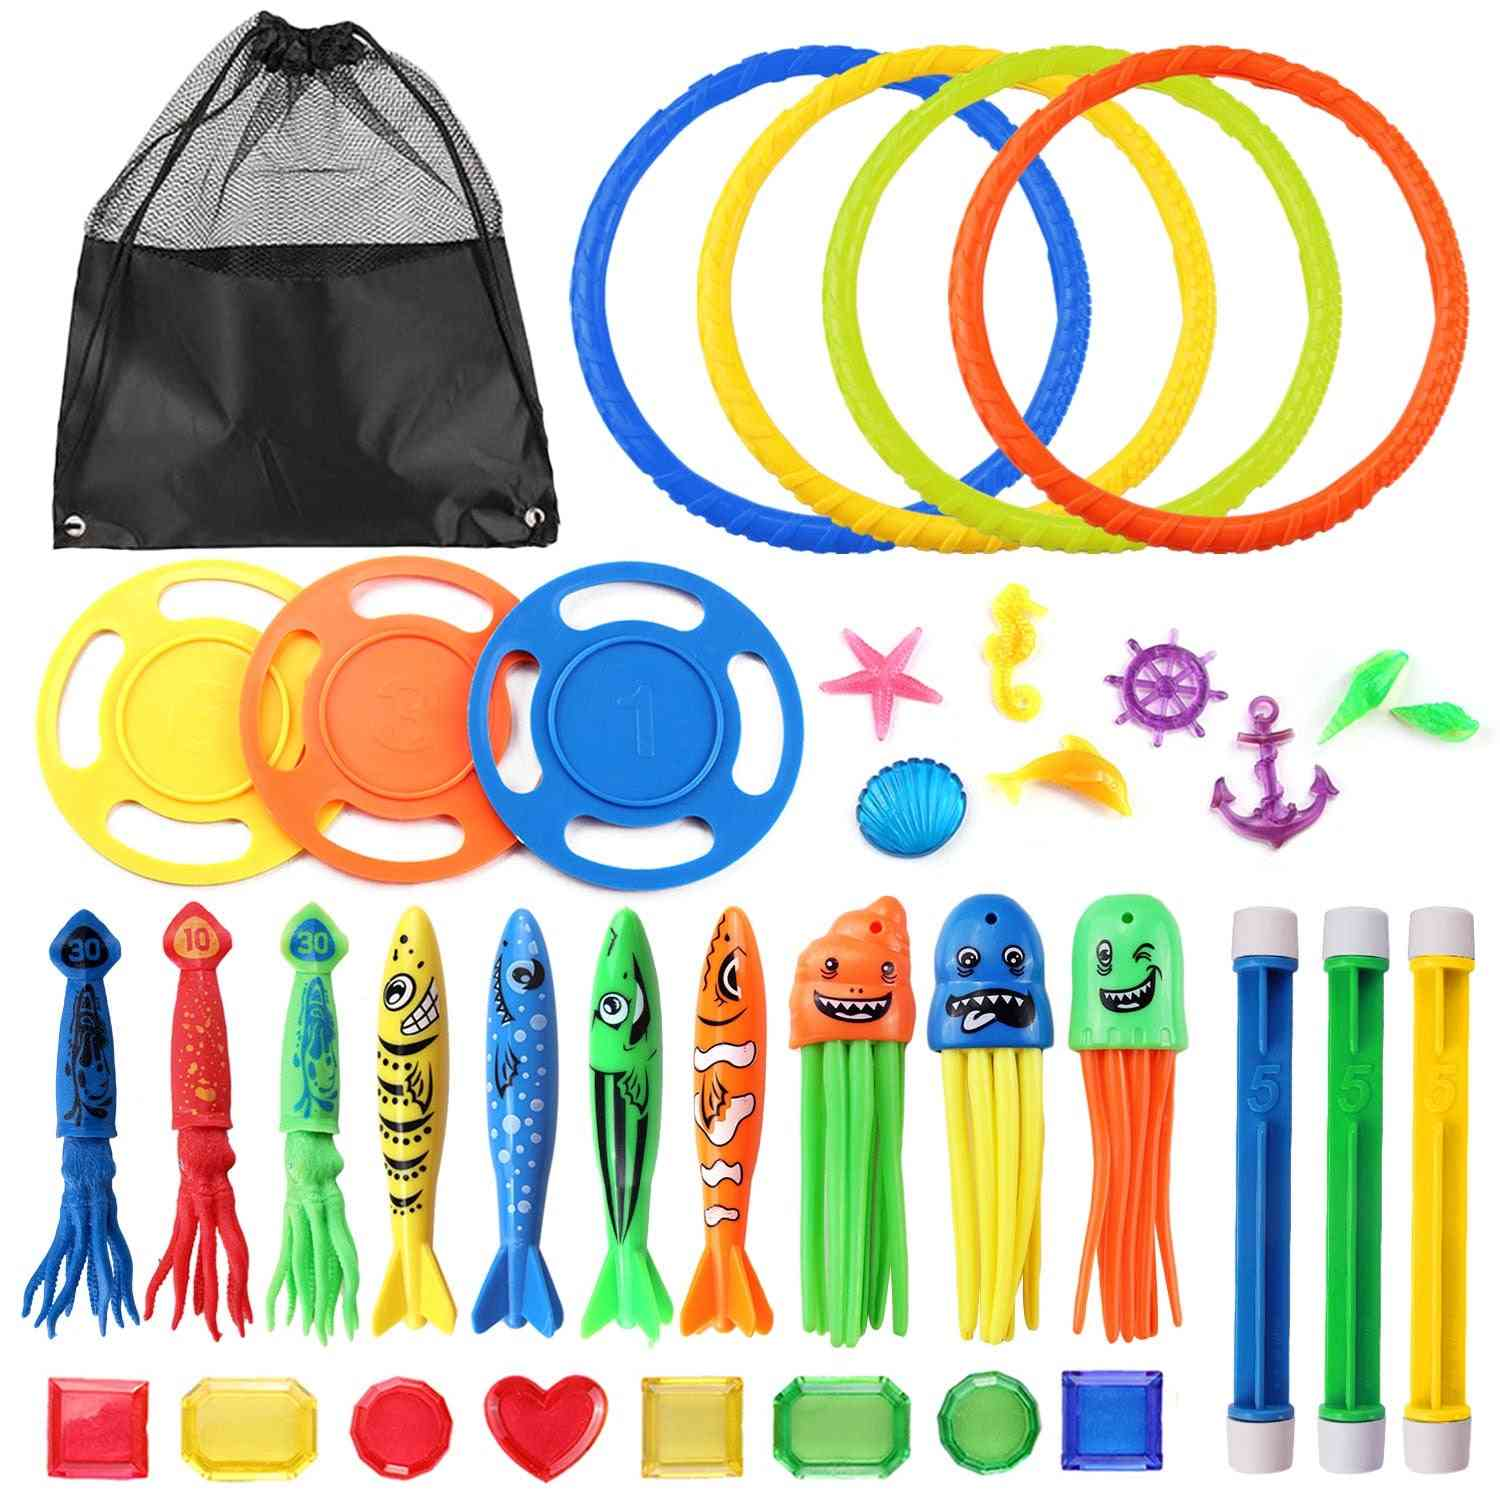 Funny Diving Set - Underwater Water Play With Storage Bag For /